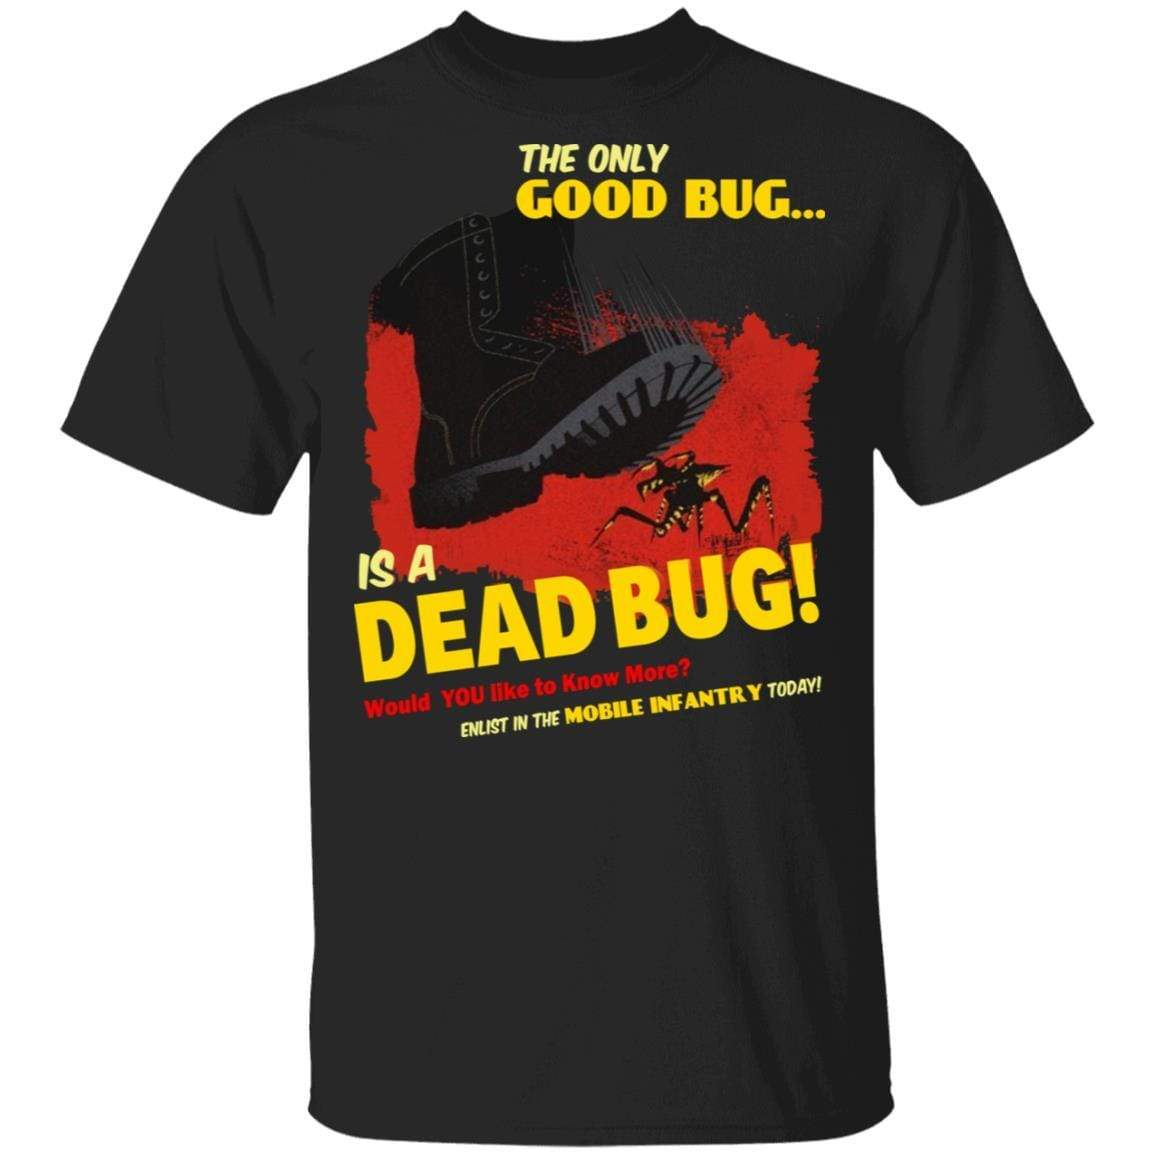 The Only Good Bug Is A Dead Bug Would You Like To Know More Enlist In The Mobile Infantry Today T-Shirts, Hoodies 1049-9953-91821633-48144 - Tee Ript